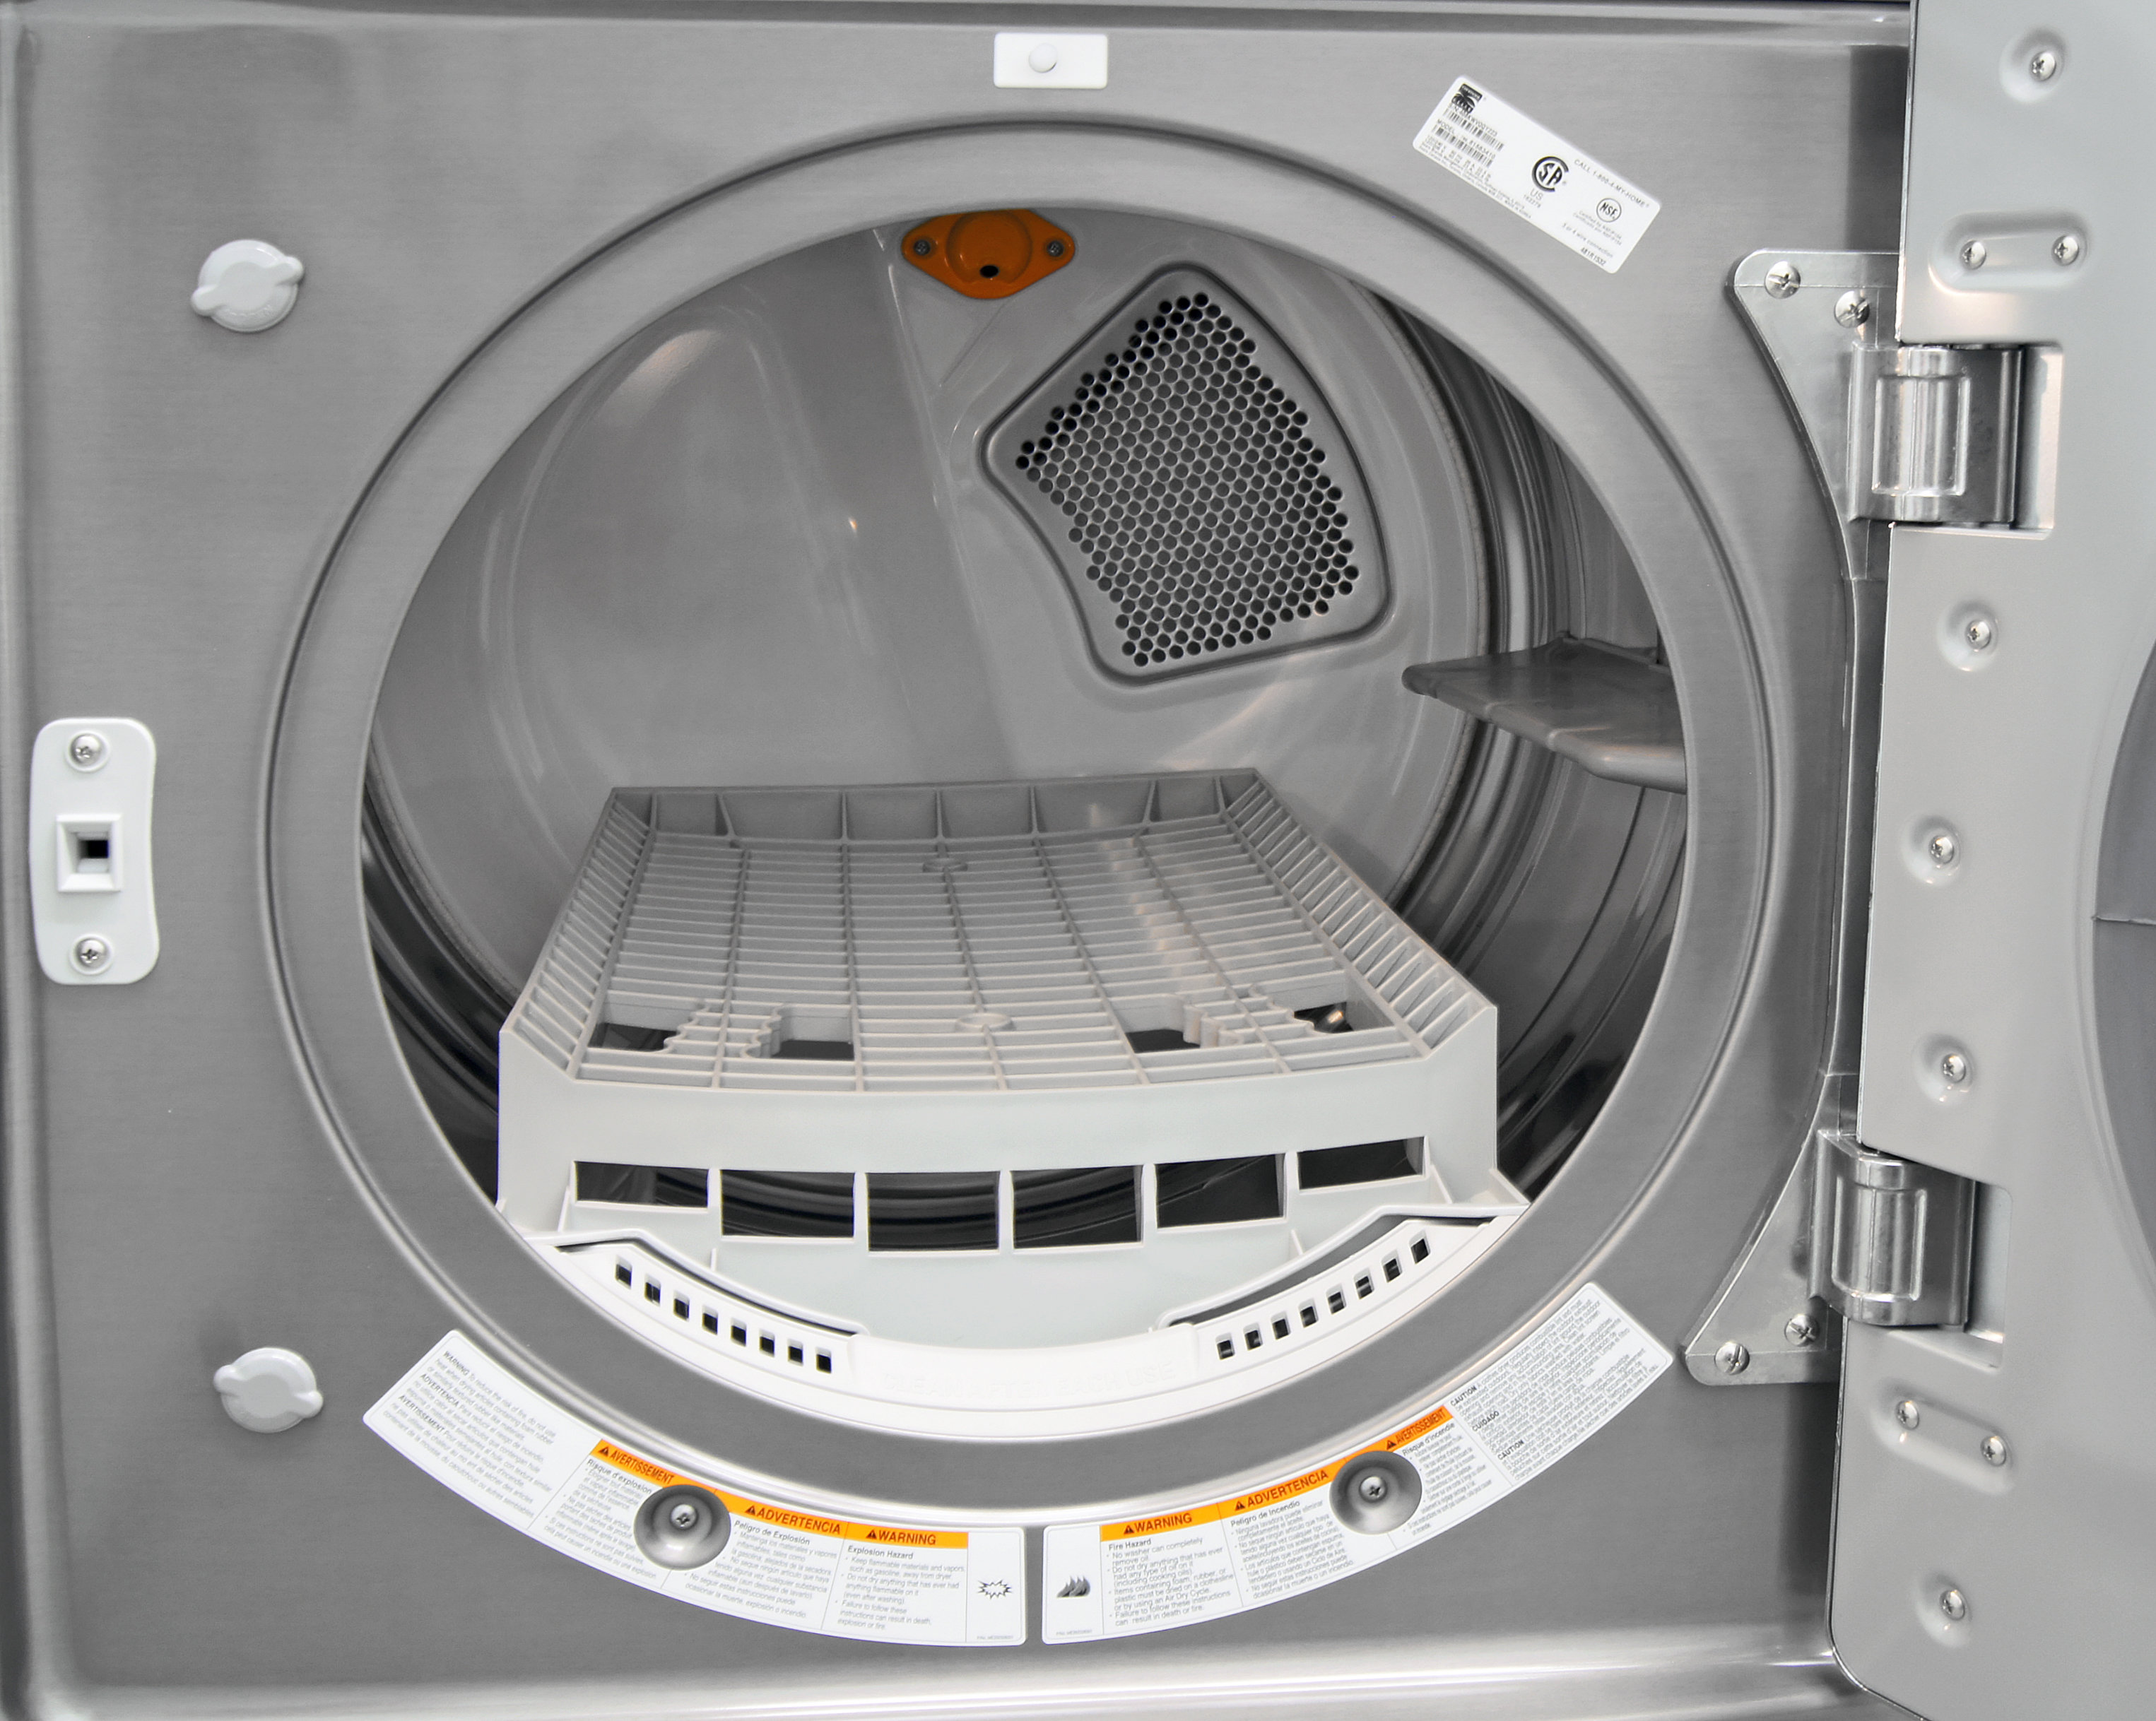 A stainless steel drum is expected for a high-end dryer like the Kenmore Elite 81583; the drying rack is an unexpected bonus.